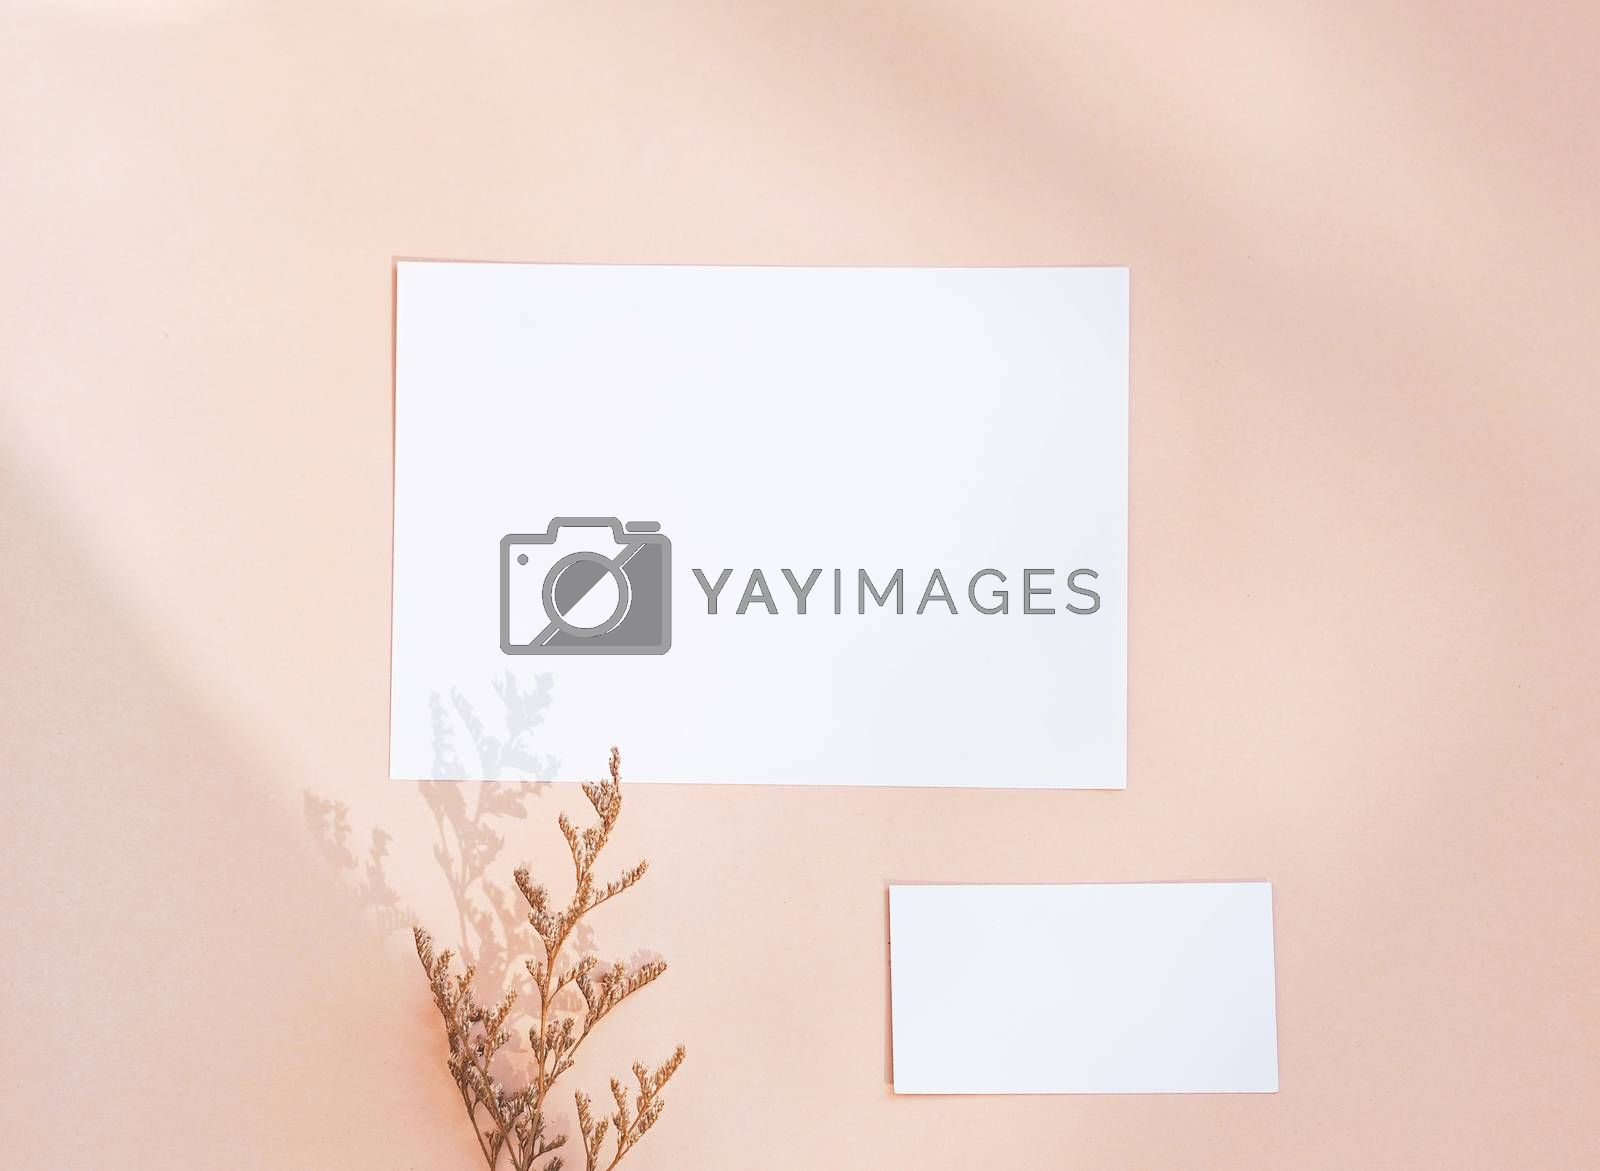 Flat lay of branding identity business name card on yellow background with flower, minimal light and shadow concept for design